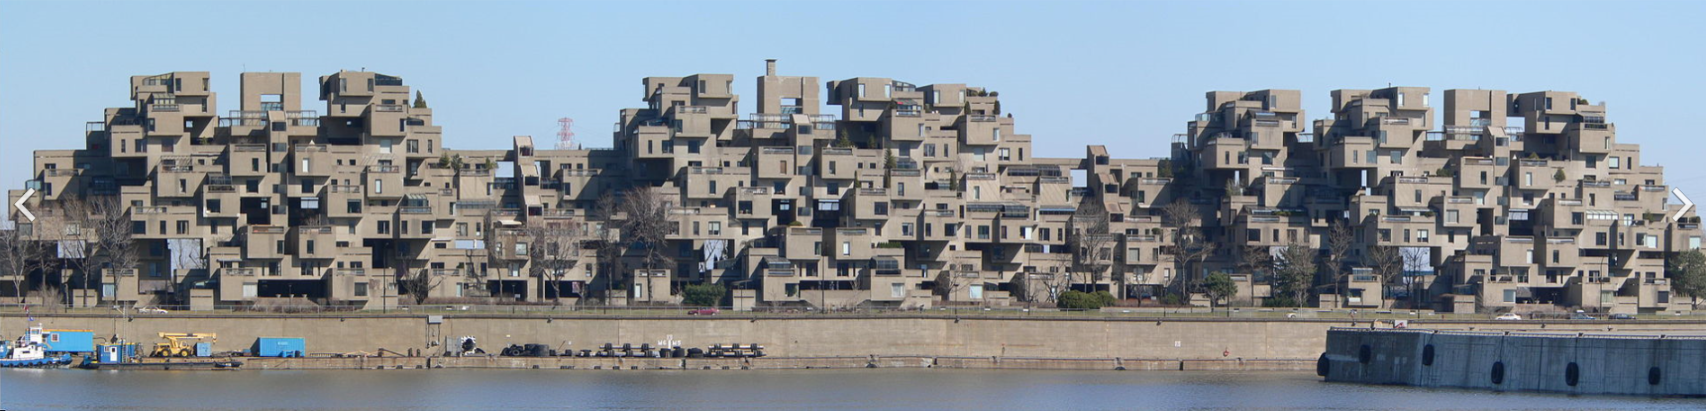 Habitat 67 in Montreal, Quebec, Canada, is a Brutalist building. Vassgergely at the English language Wikipedia